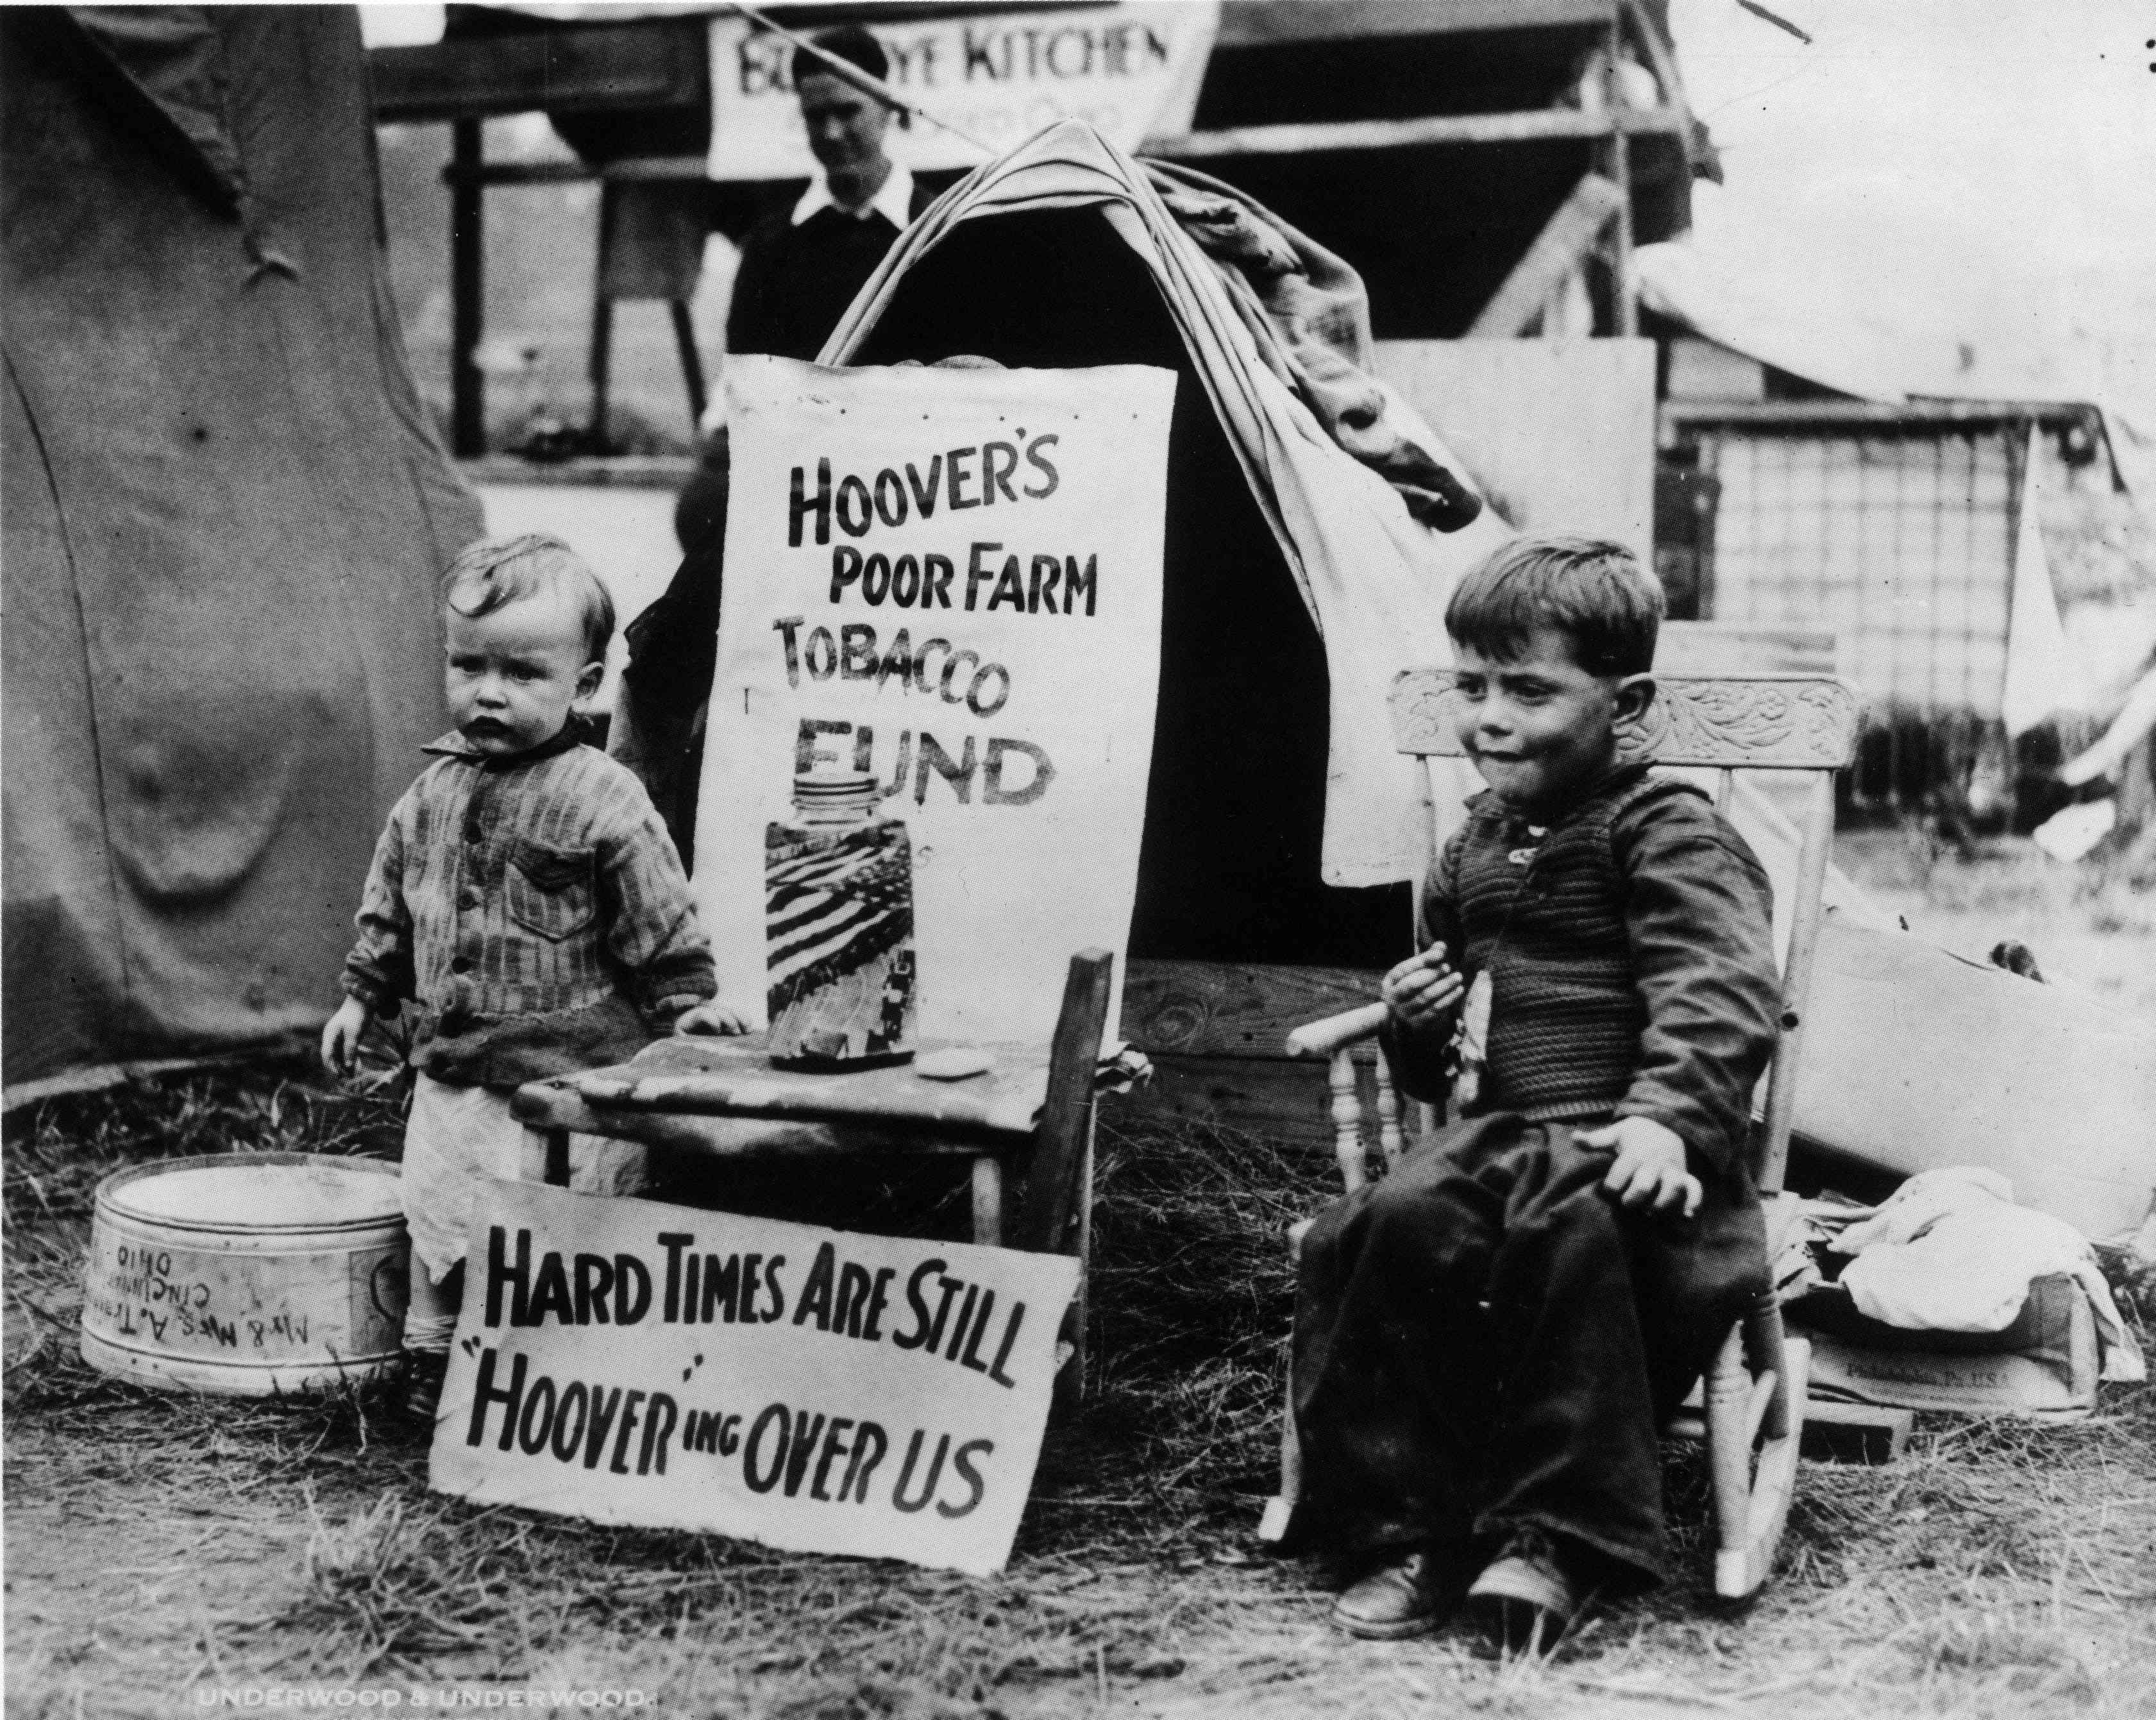 Hoovervilles: Homeless Camps of the Great Depression